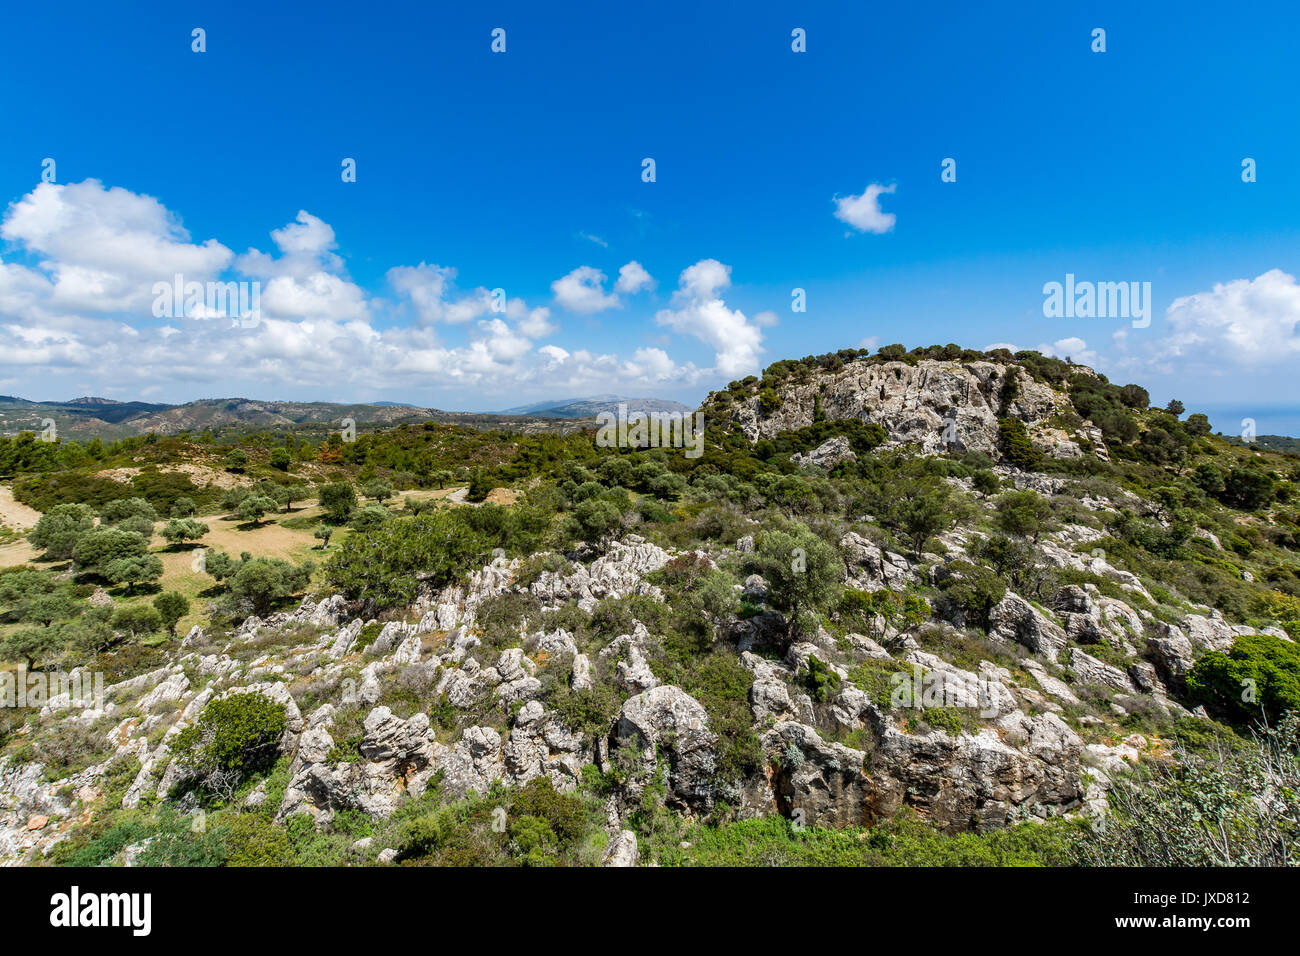 Magnificent landscape view from Asklepios castle, Rhodes island, Greece - Stock Image